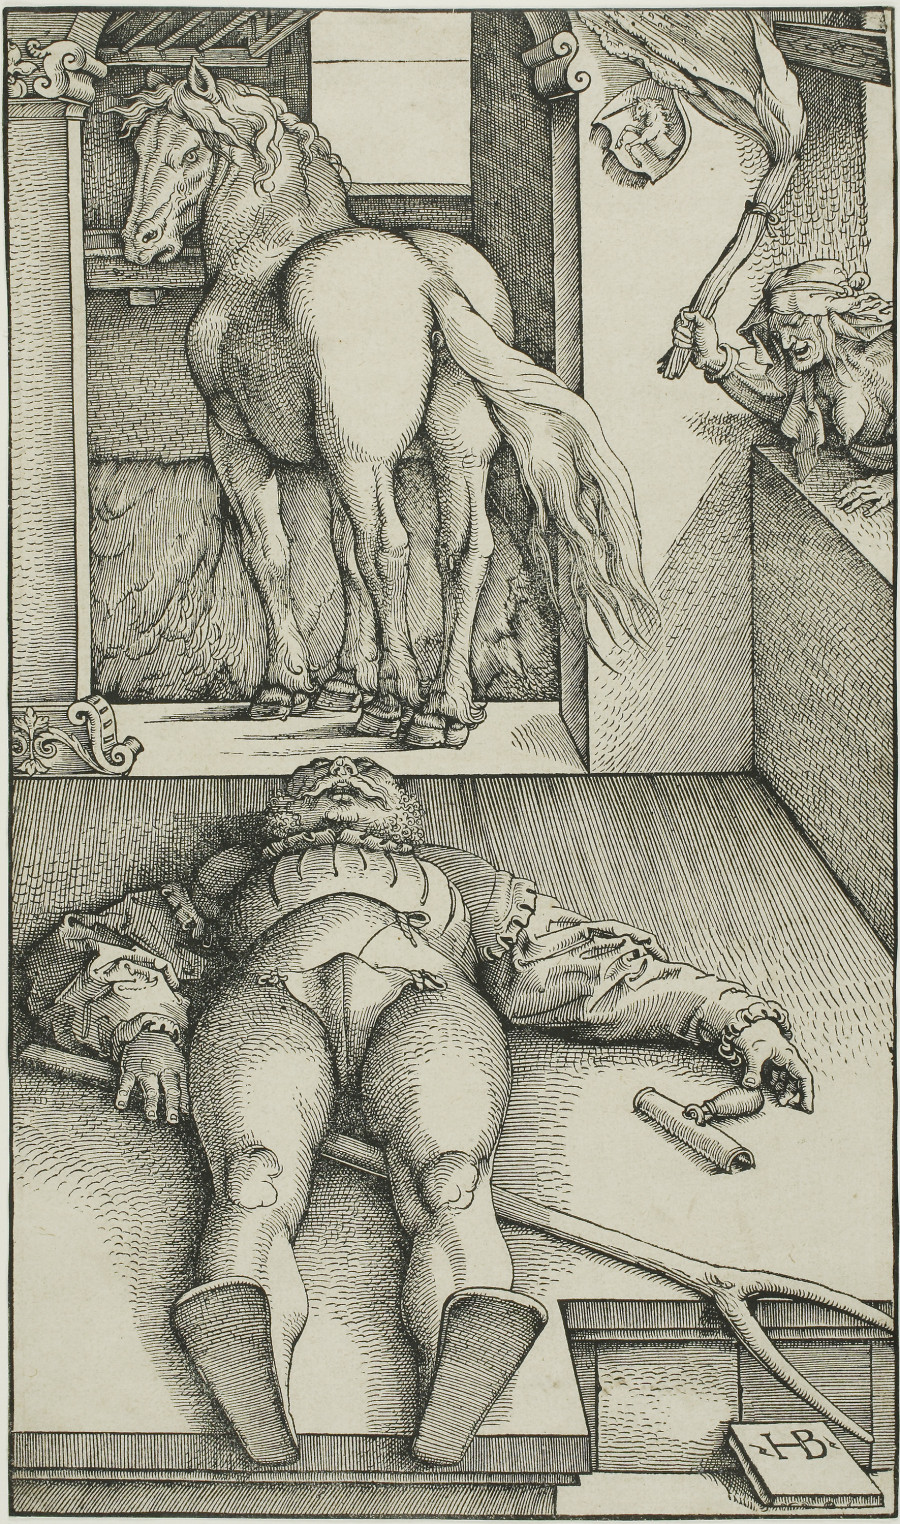 The Bewitched Groom, ca. 1544; By Hans Baldung Grien (German, 1475-1545); Woodcut on ivory laid paper, 13 3/8 x 7 7/8 inches; Courtesy of a private collection